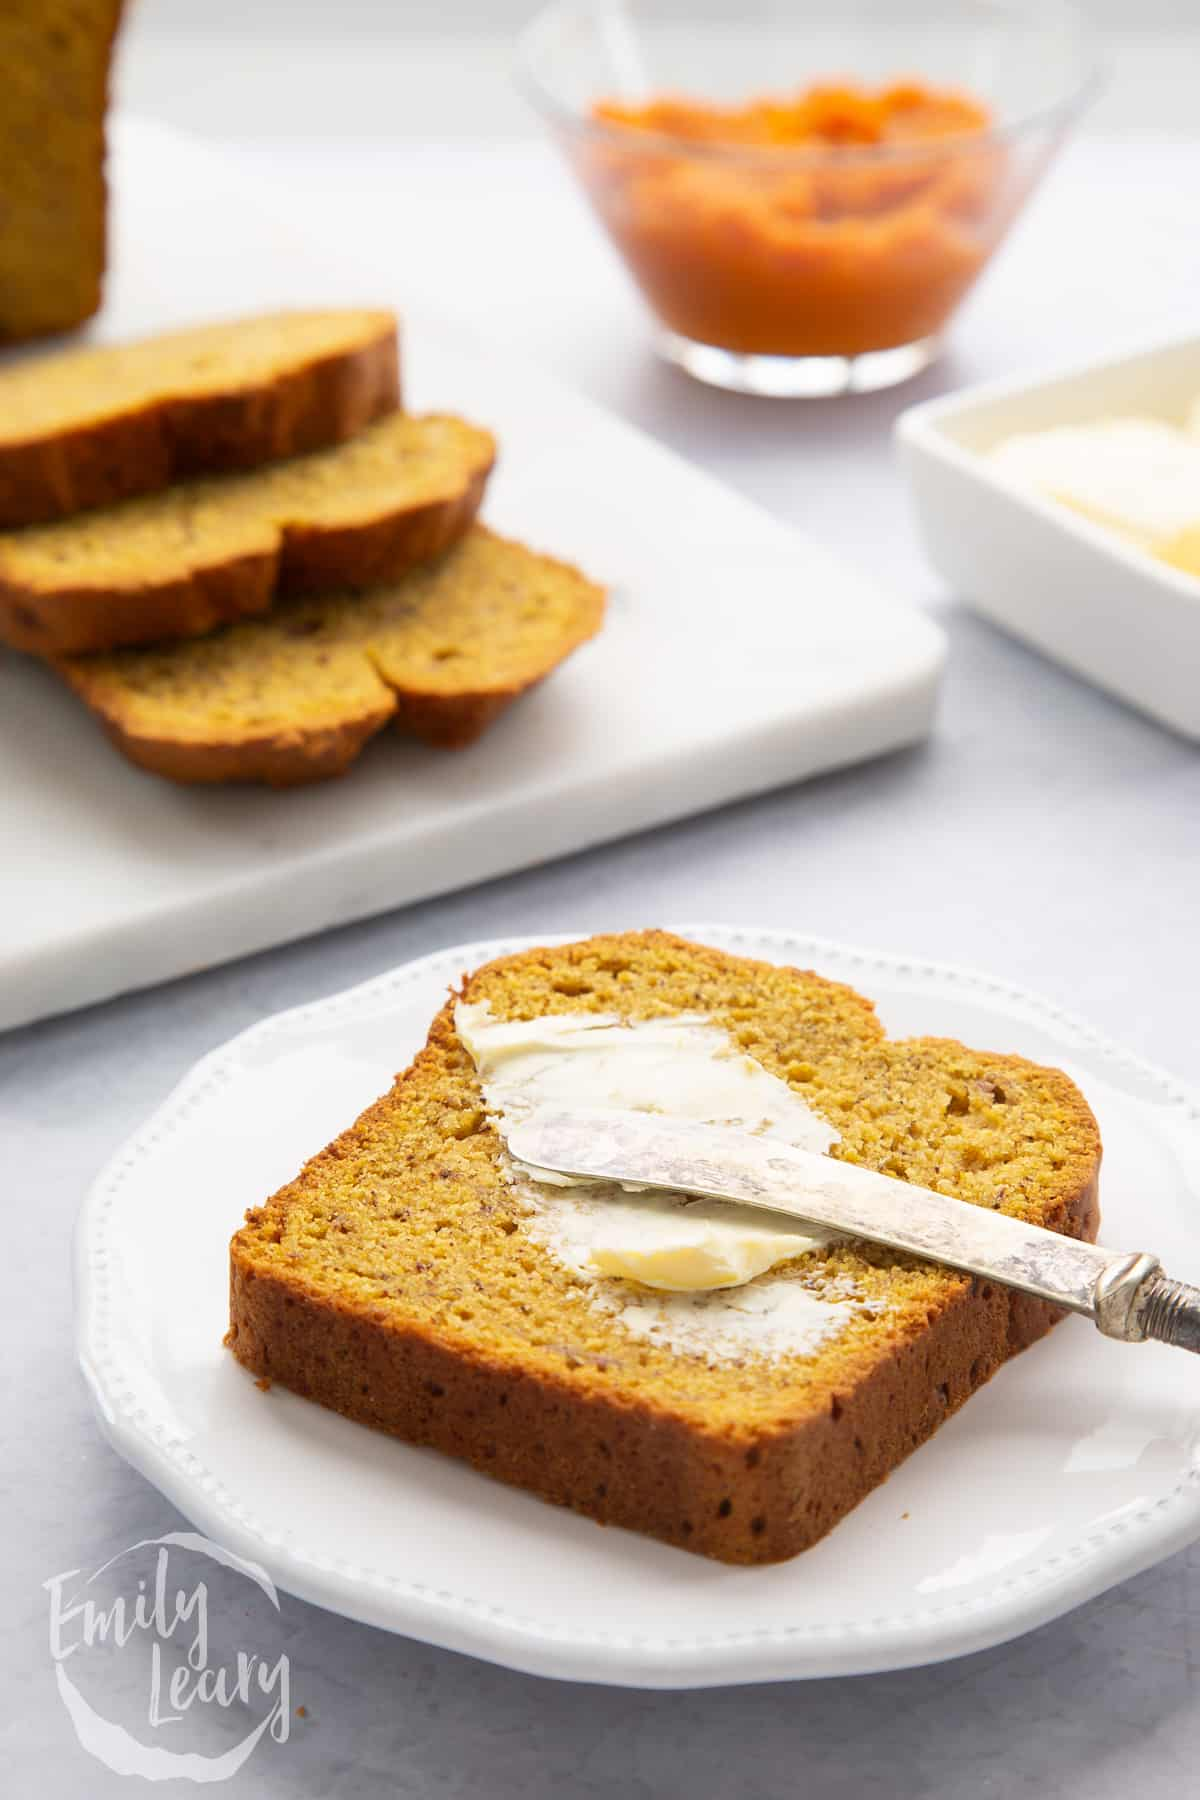 A slice of pumpkin banana bread on a small white plate. It is being buttered with a small knife.